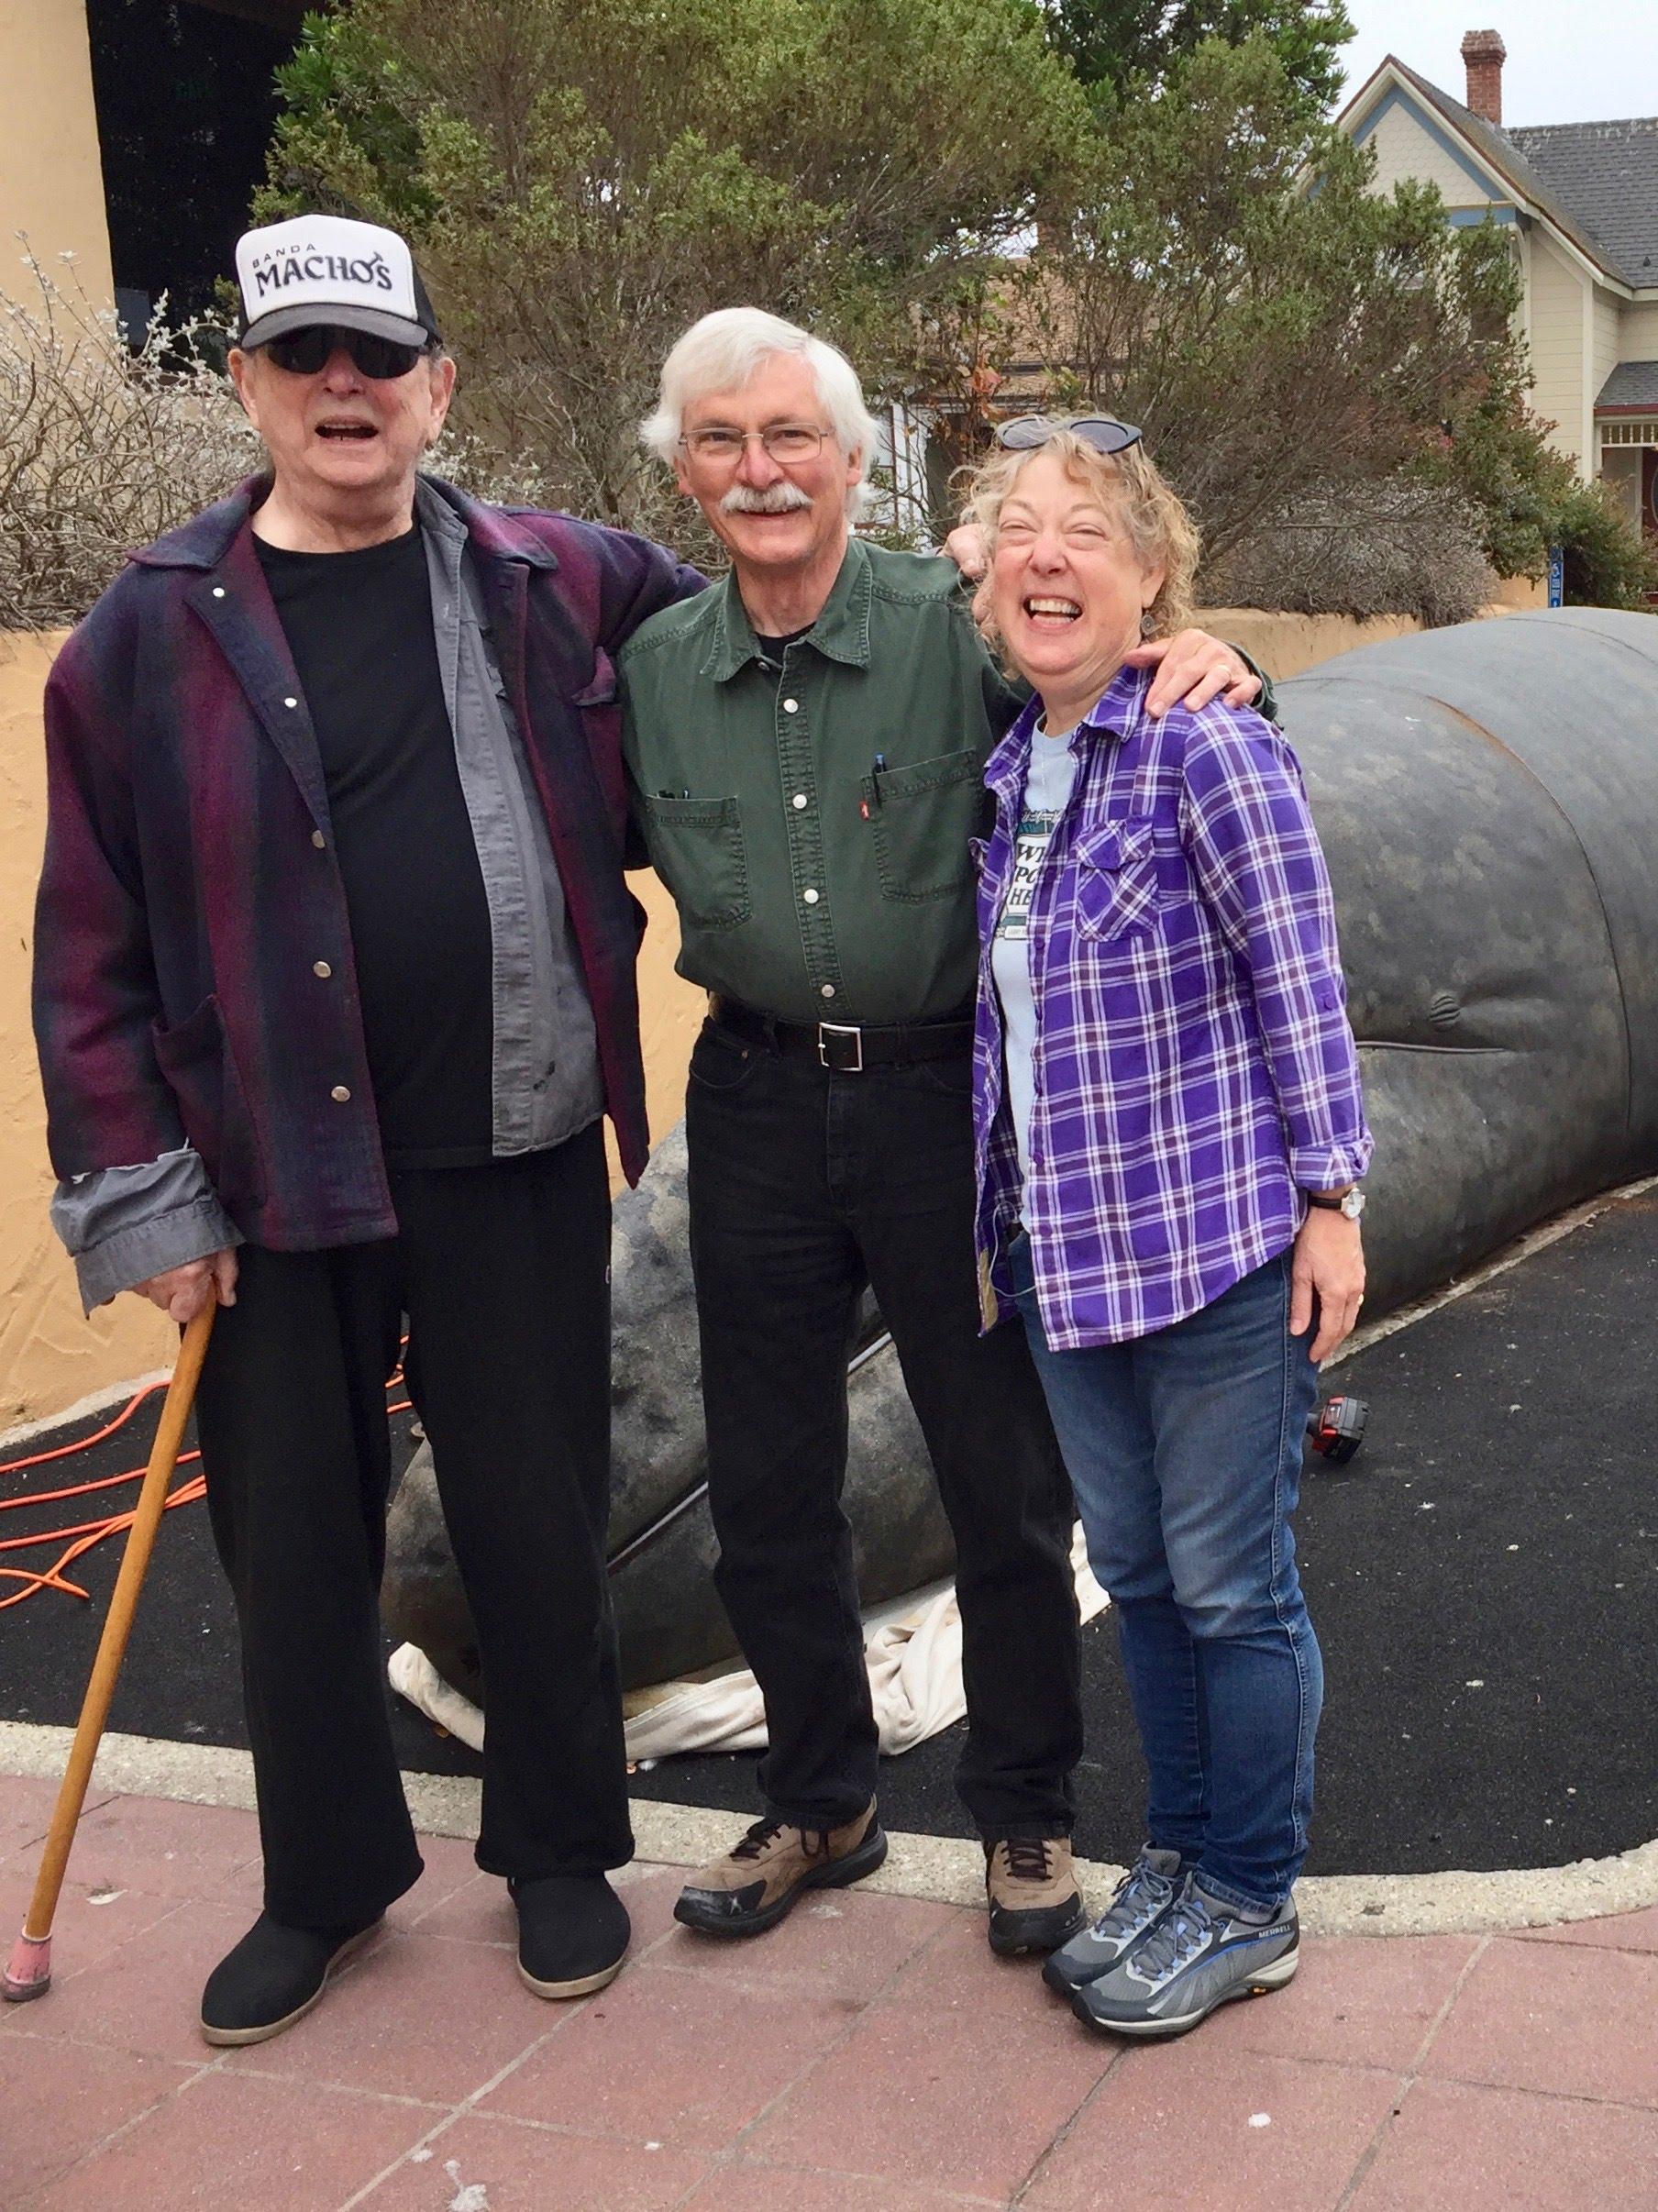 After months of dialogue there was a joyful anticipation for the project's completion. Mary and Larry Foster poise here with Mayor Pro Tempore Robert Huitt who provided leadership and support.